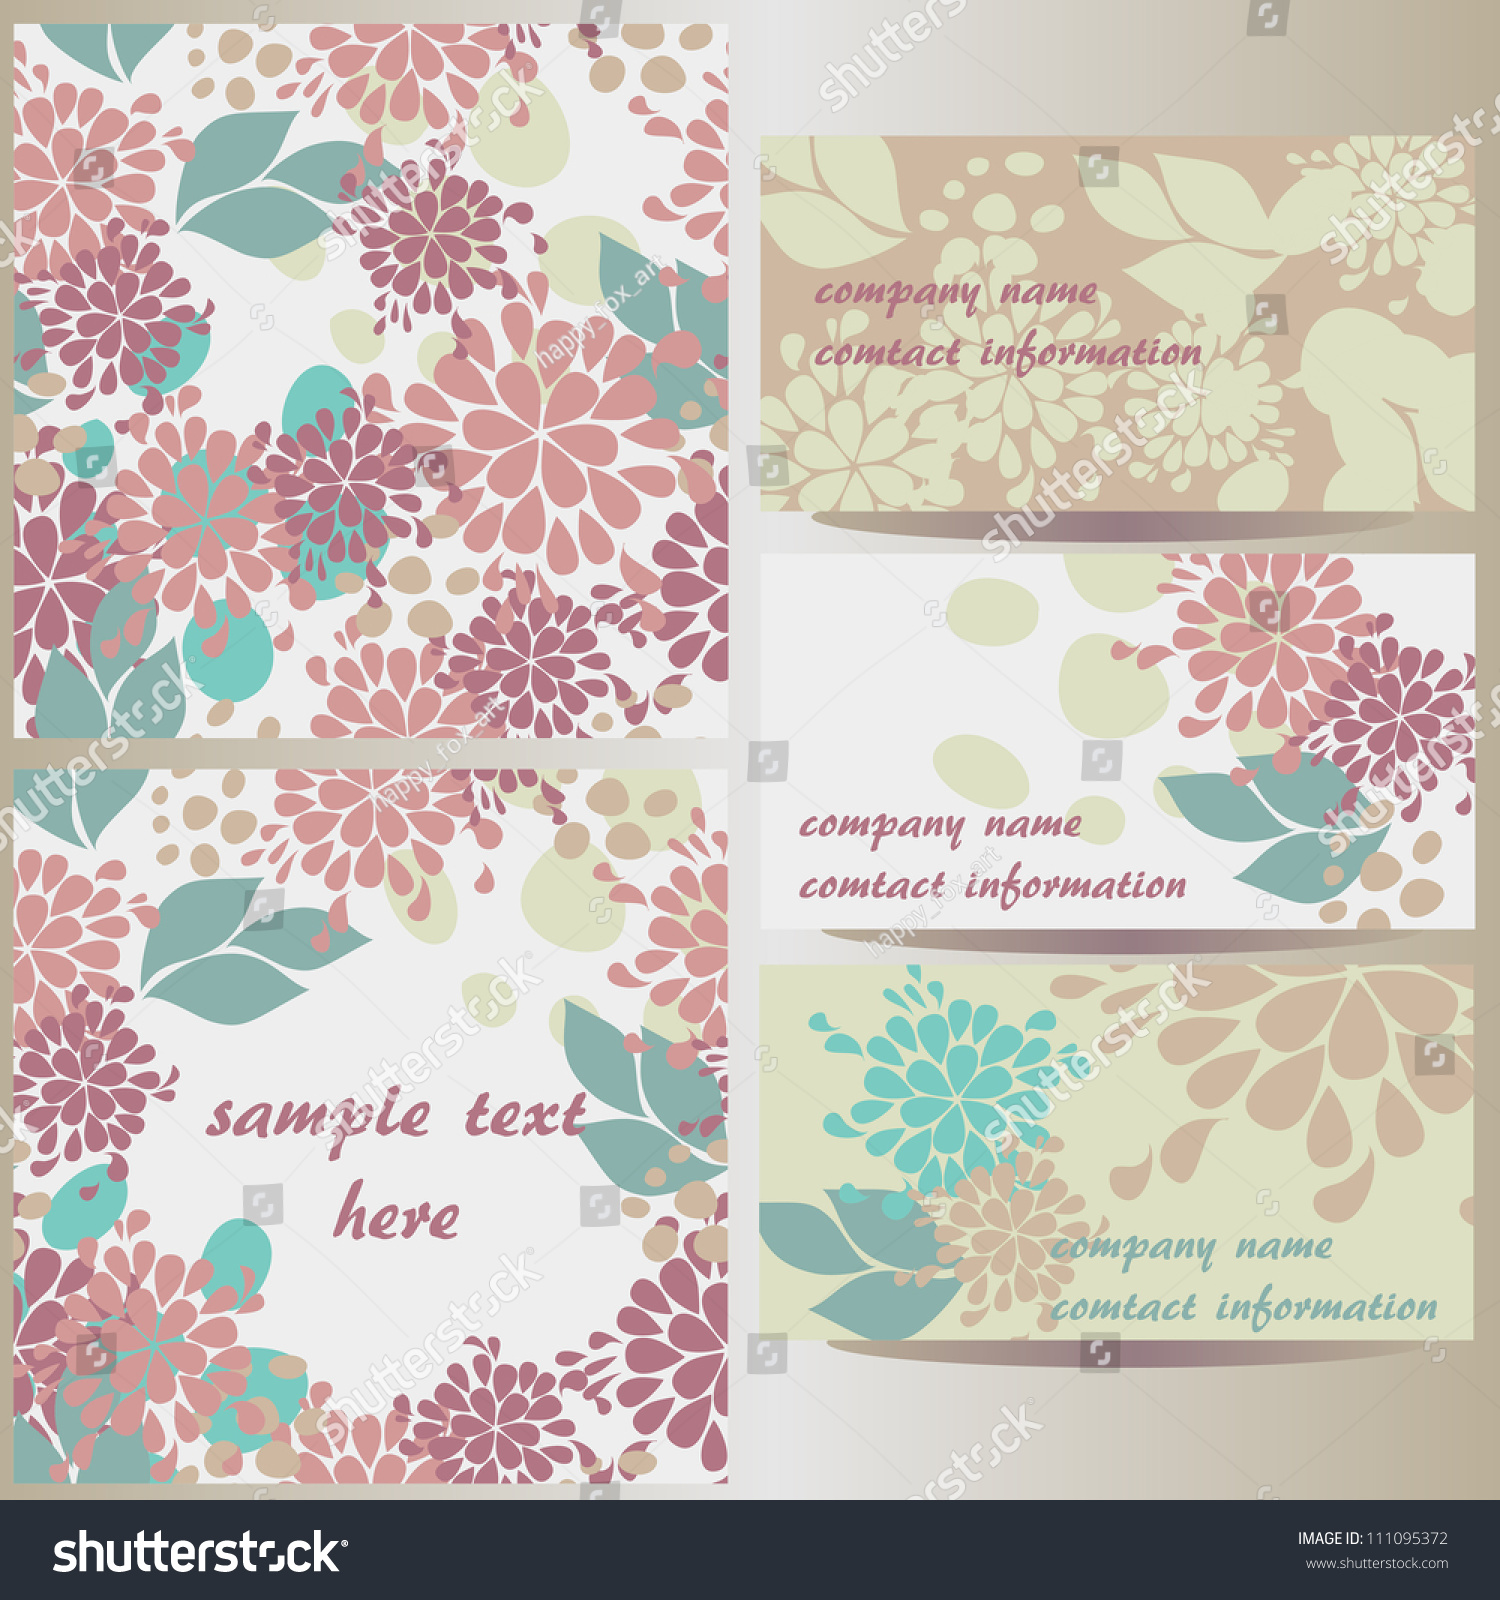 Set Vector Floral Designs Business Cards Stock Vector 111095372 ...